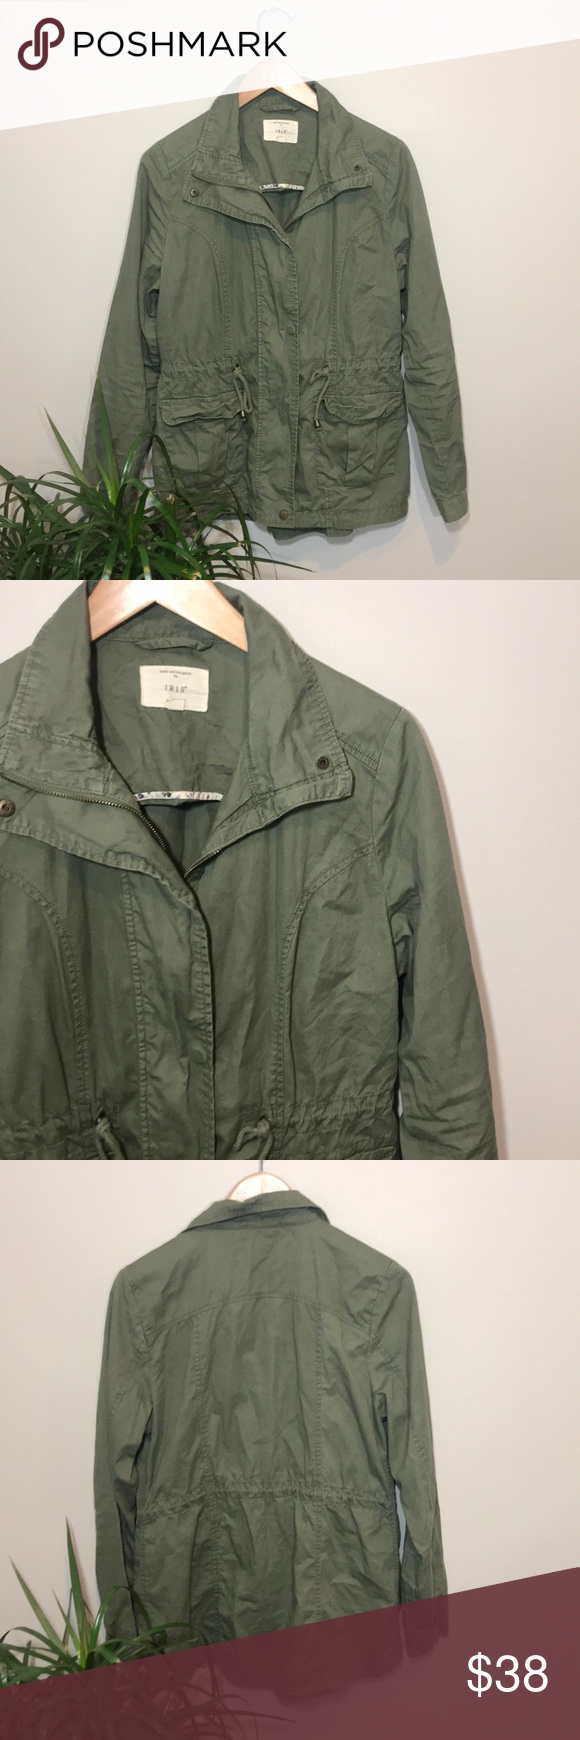 d6e3f0373afd Iris army green military jacket Iris army green military jacket - size  medium. Zip up